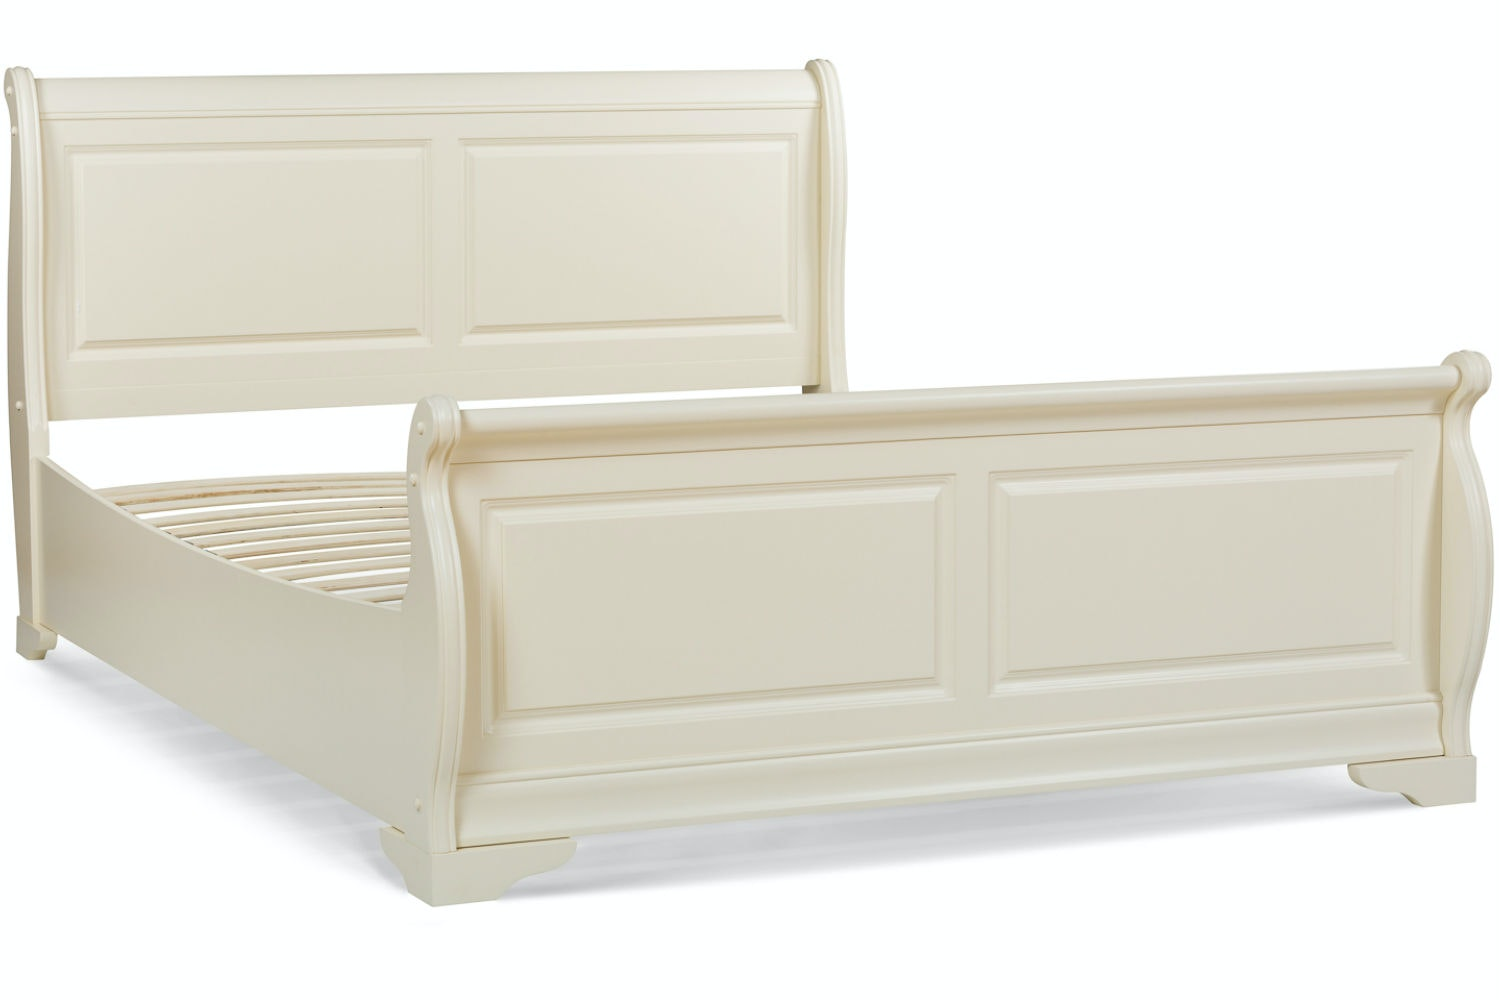 Chardonnay King Bed Frame | 5ft | Cream